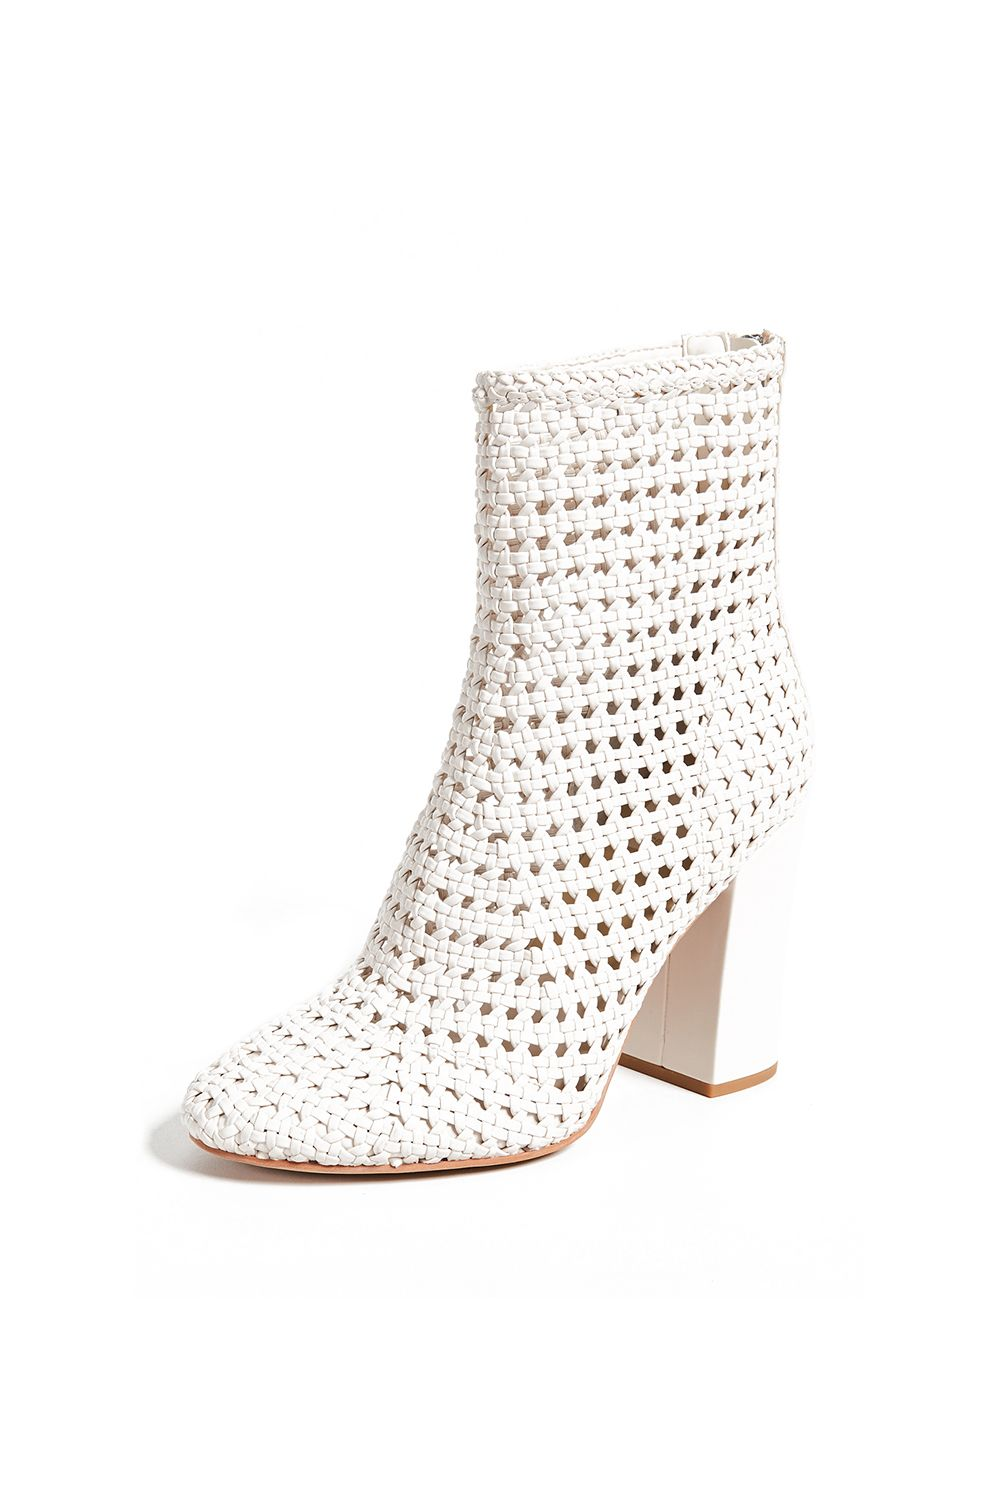 All White: Shop Summer's Must-Have Shoe Hue